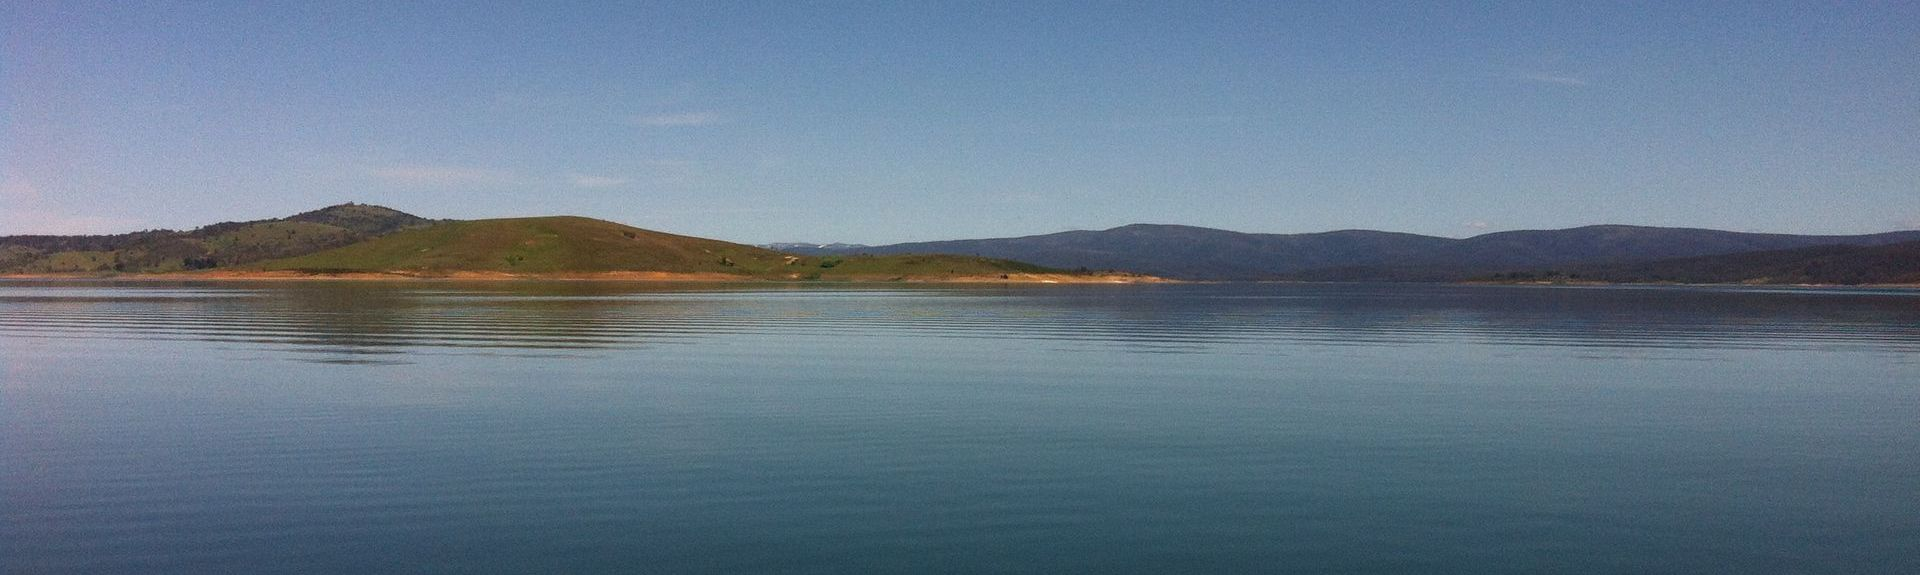 Lake Eucumbene Mt Selwyn, New South Wales, Australia